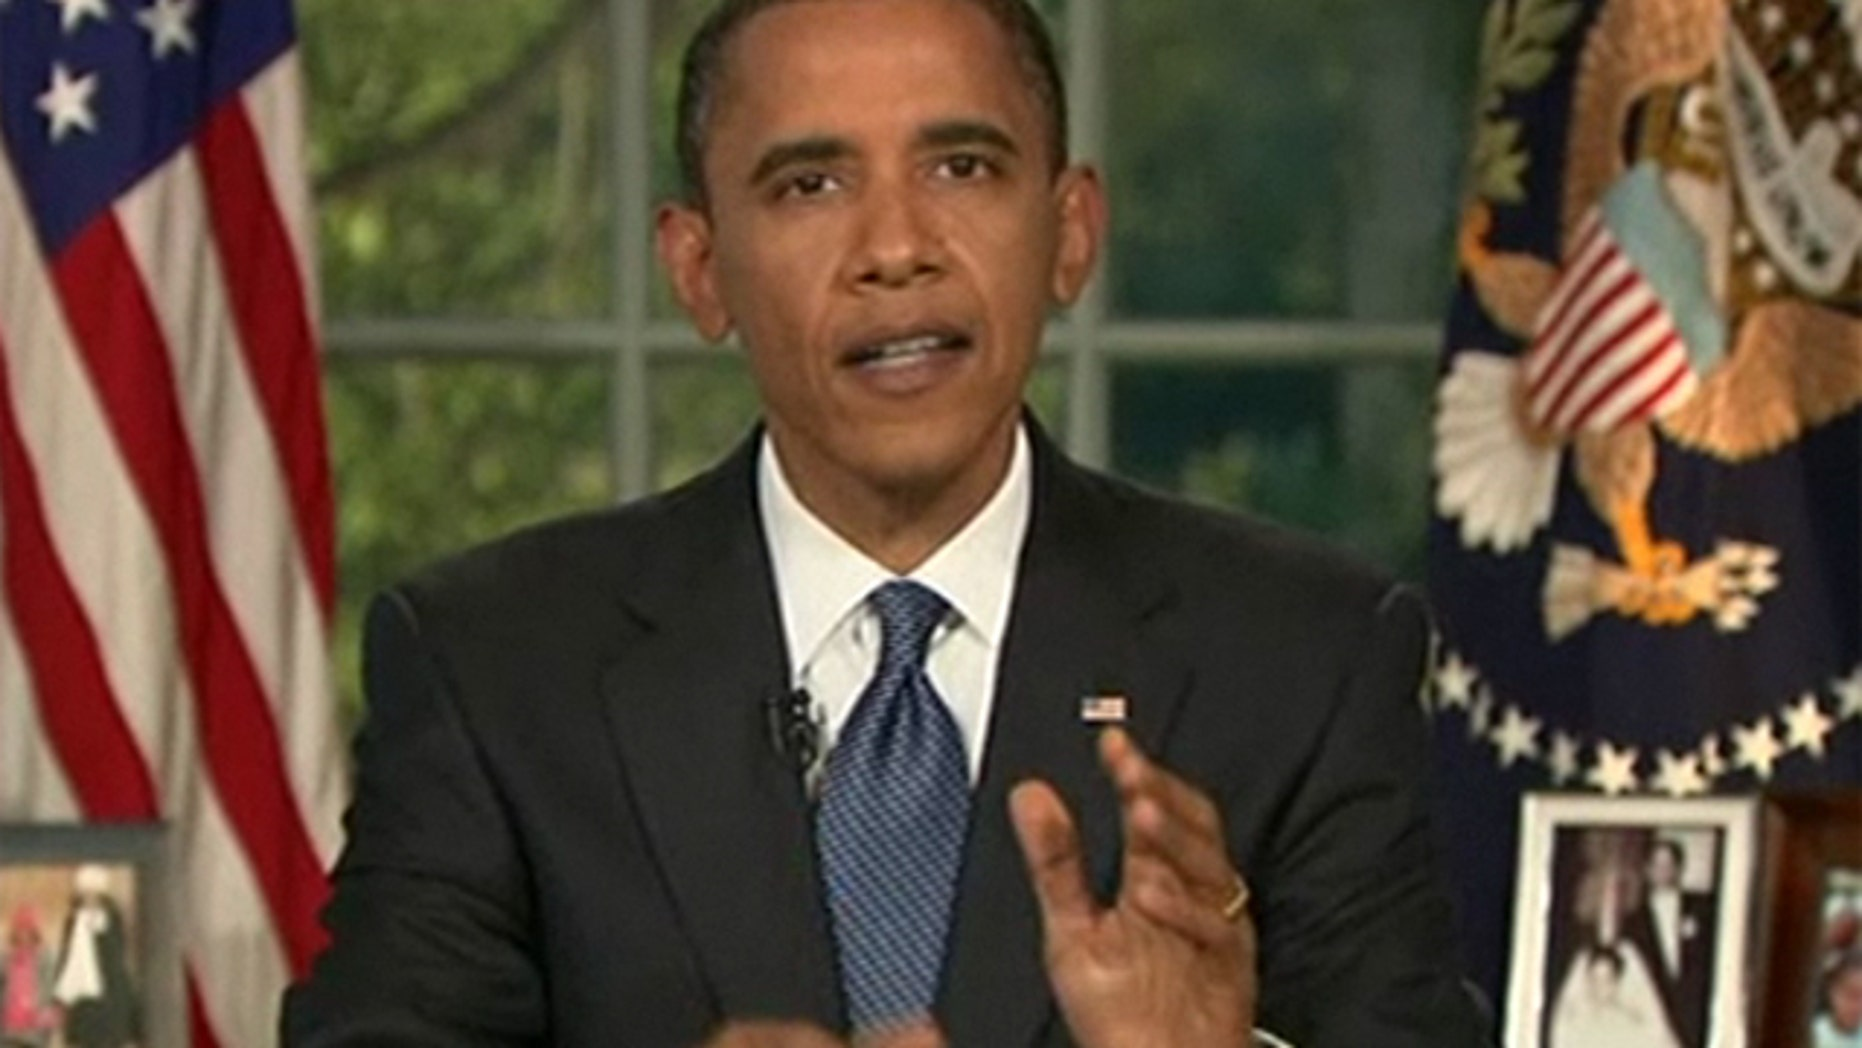 June 15, 2010: President Obama speaks from the Oval Office on the BP oil spill in the Gulf of Mexico.